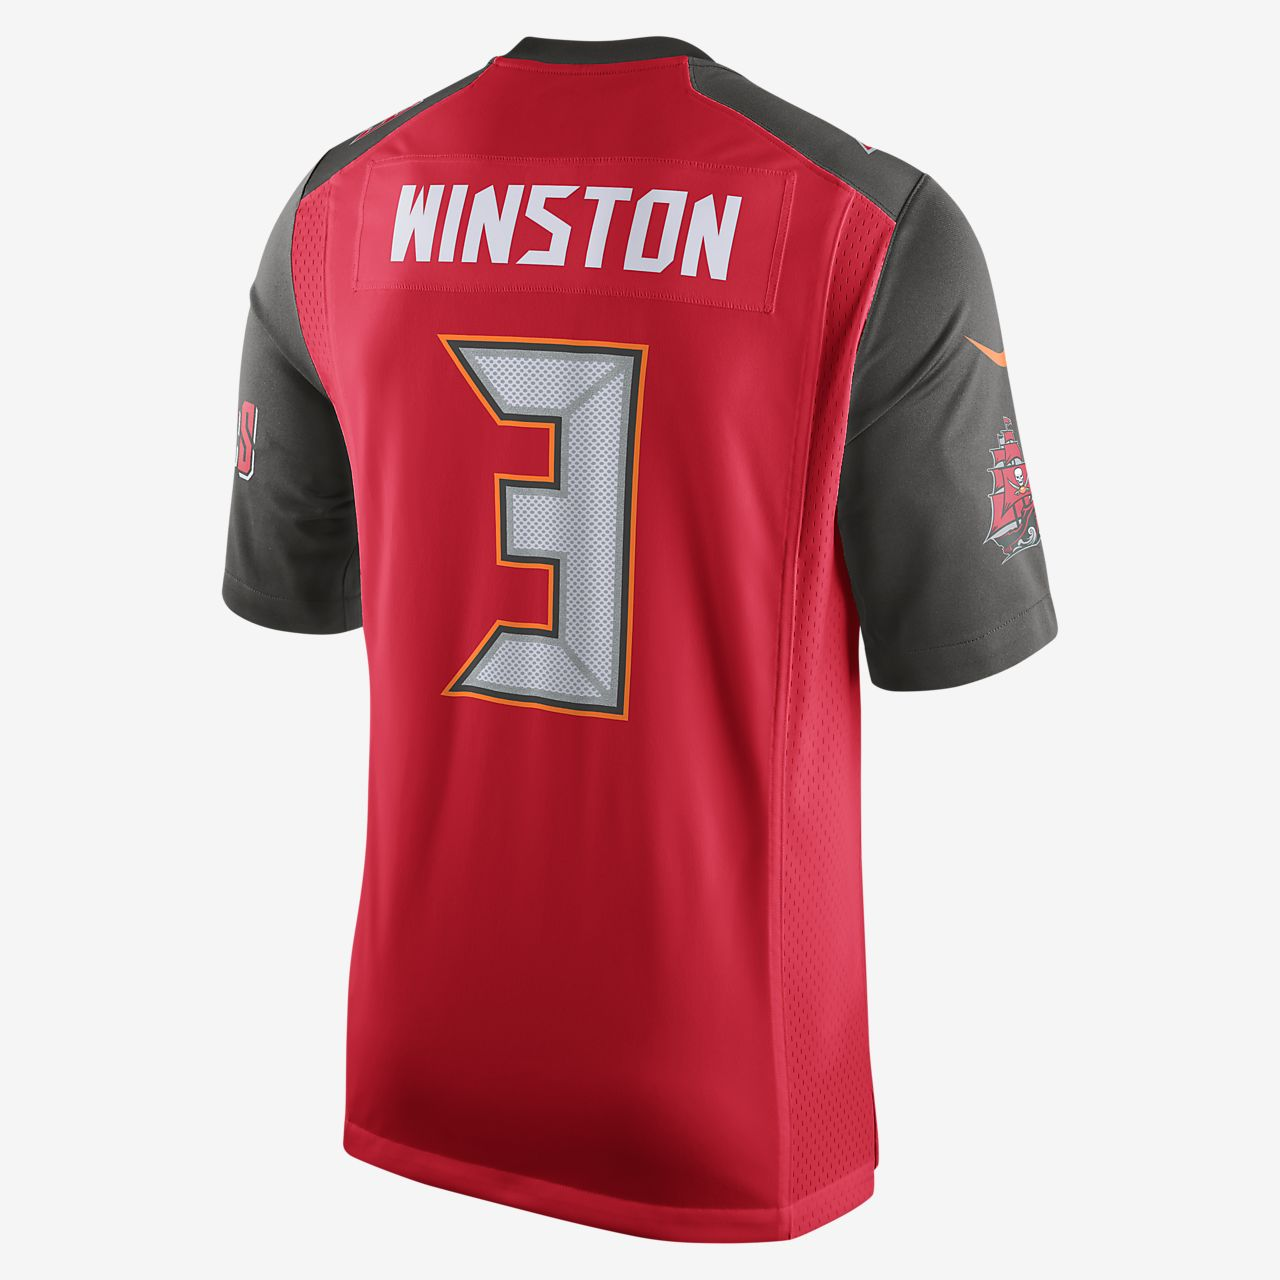 f72397ab214 NFL Tampa Bay Buccaneers (Jameis Winston) Men s Football Home Game ...